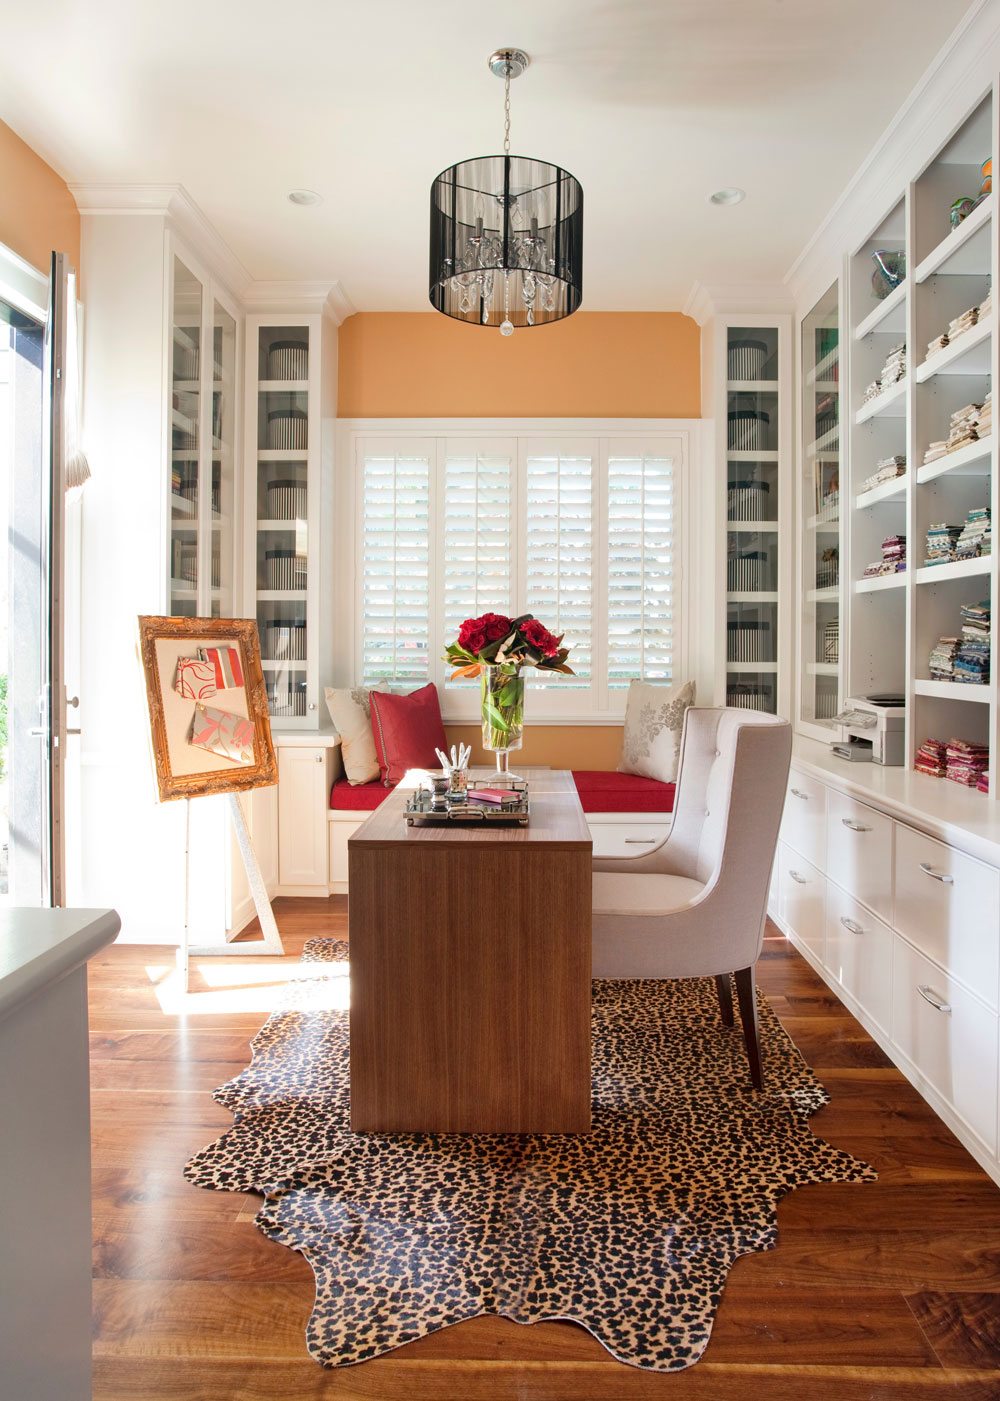 Great-home-office-design-ideas-for-the-work-of-home-people-12 Great Home-Office Design-Ideas for Work from Home People